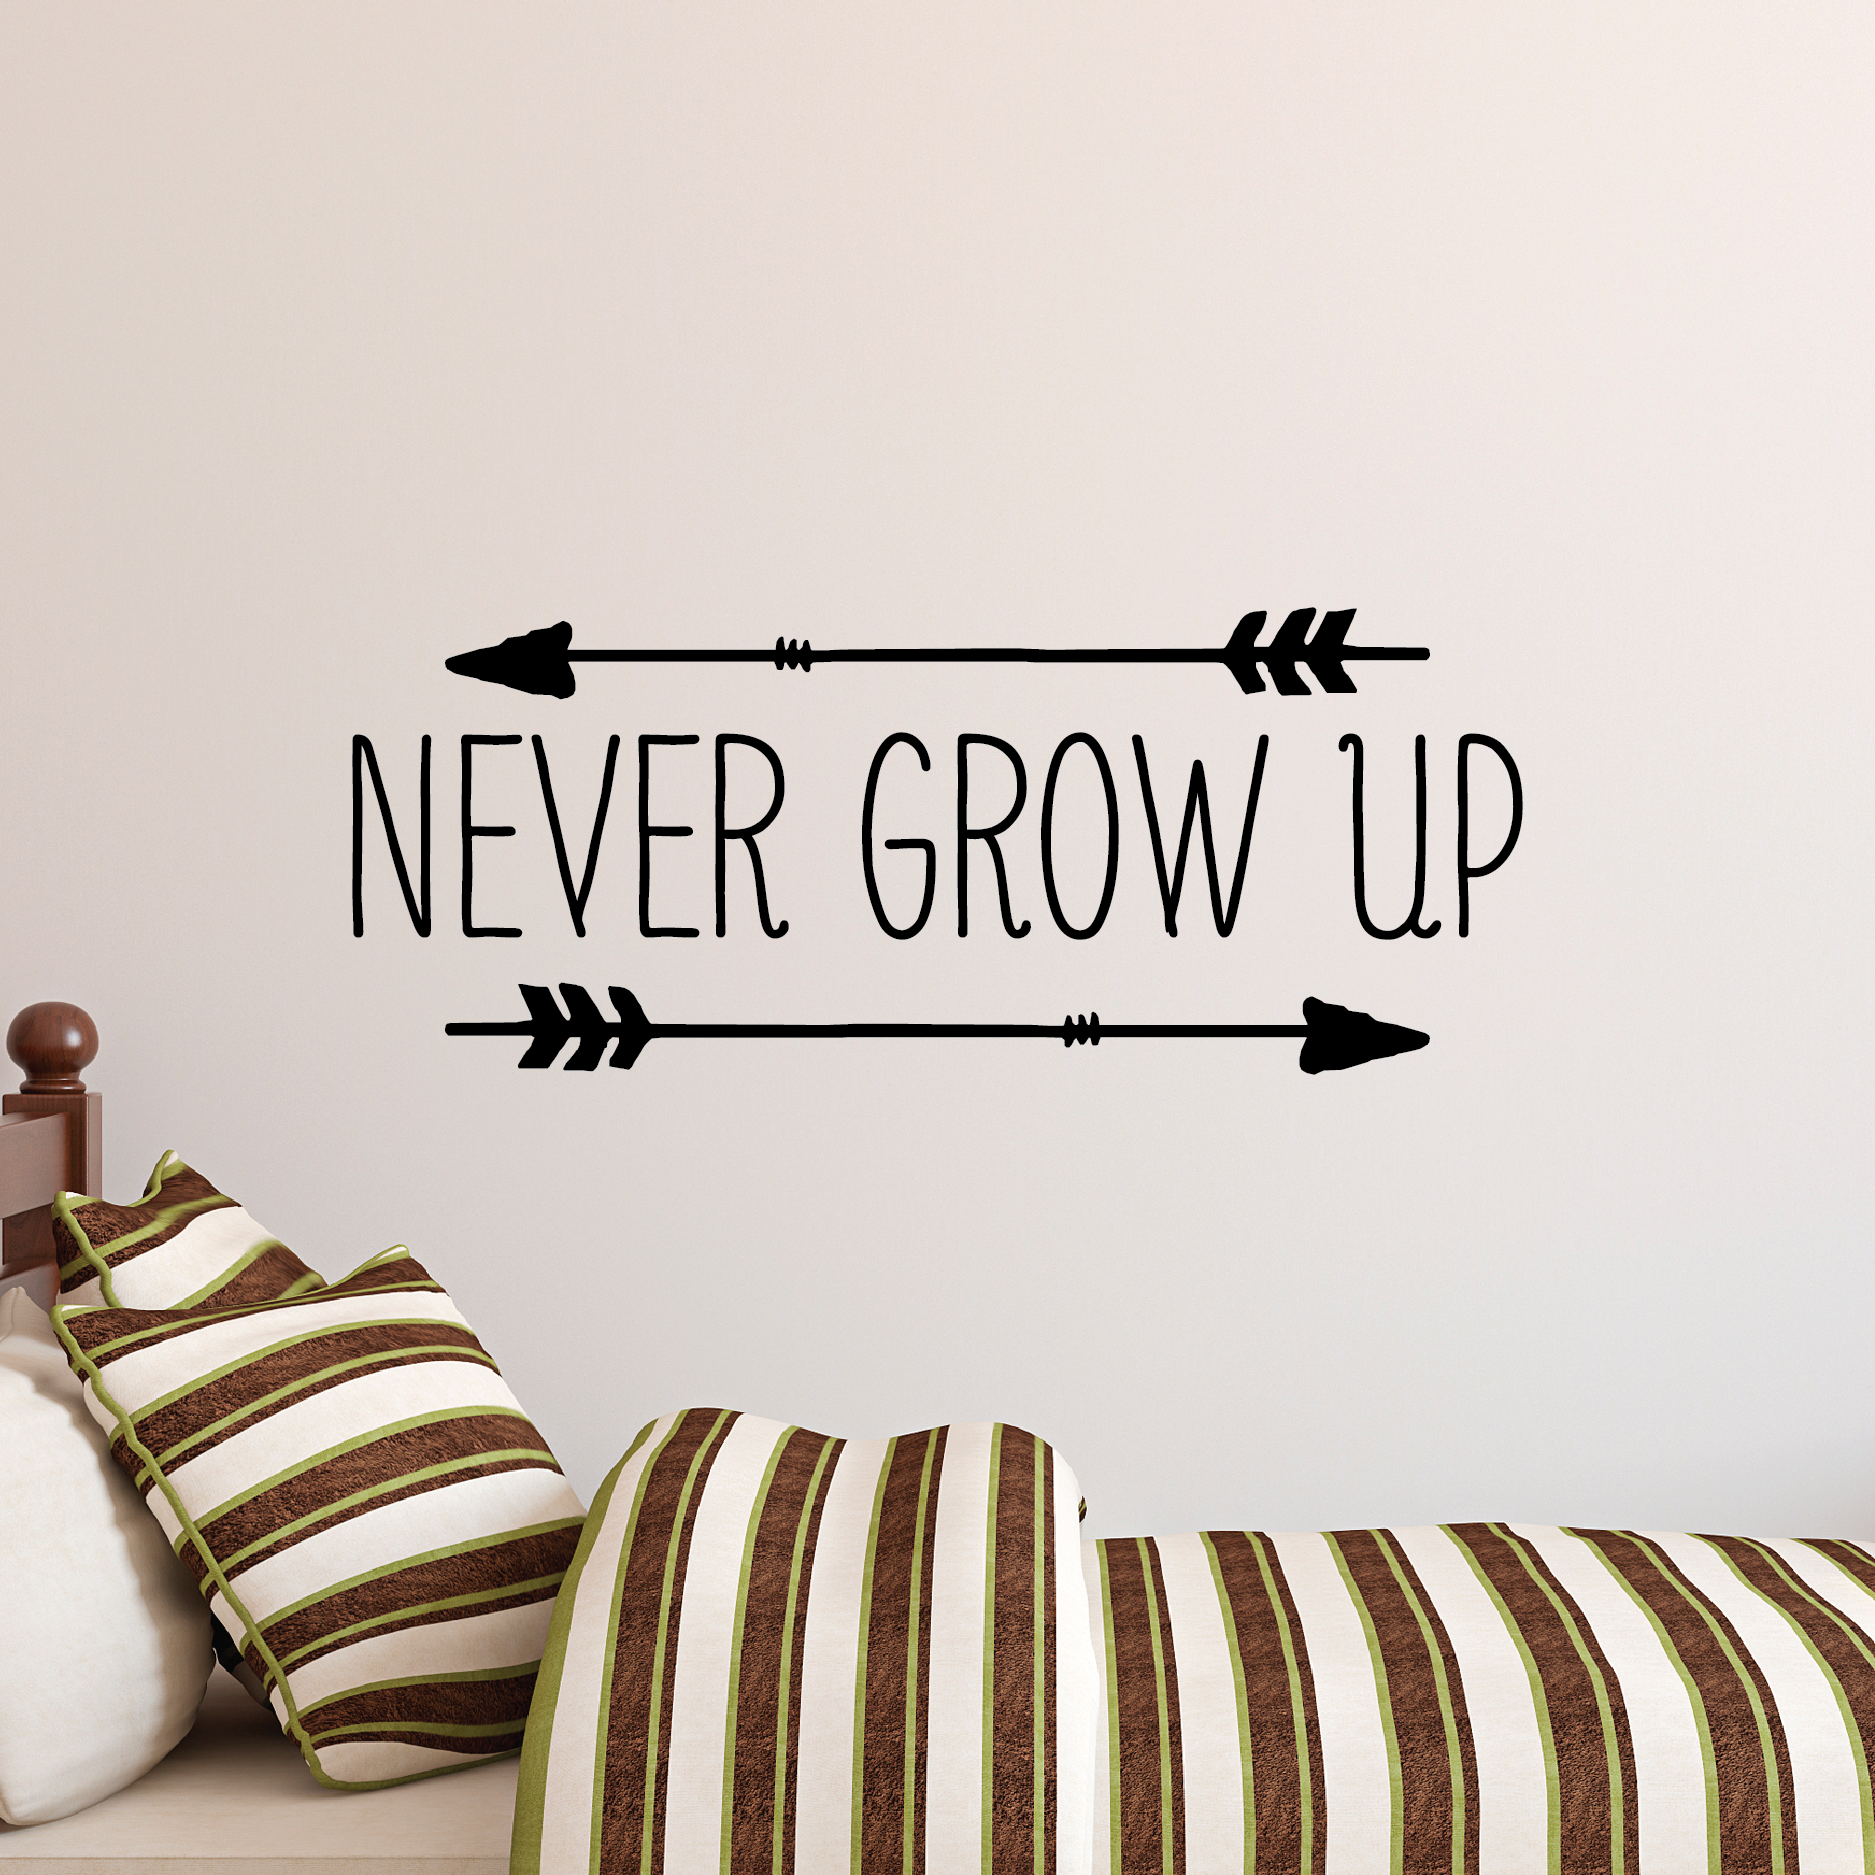 never grow up wall quotes u2122 decal